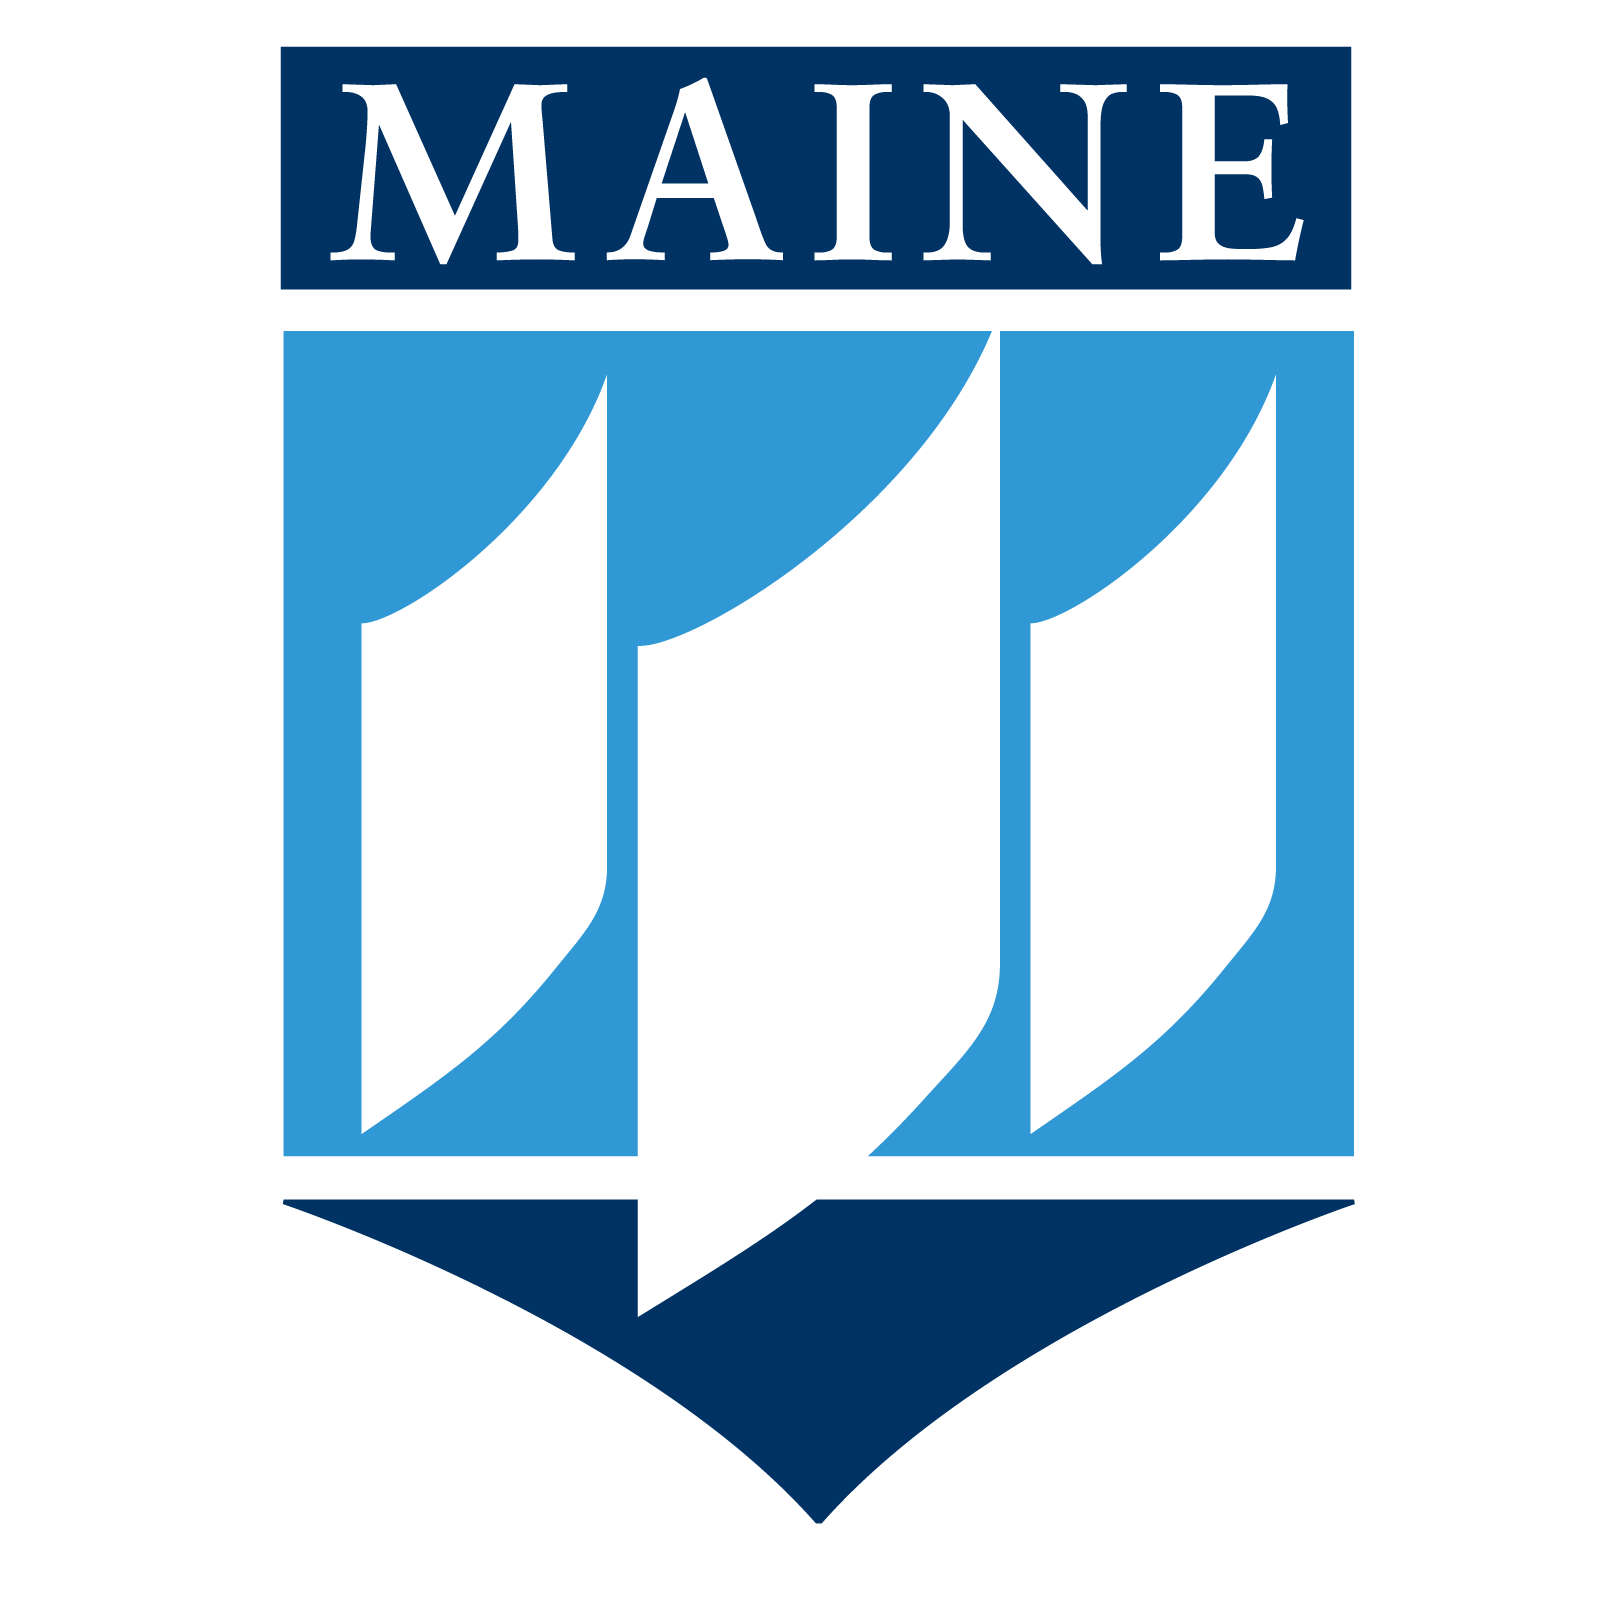 maine-crest-logo-YouTube.png